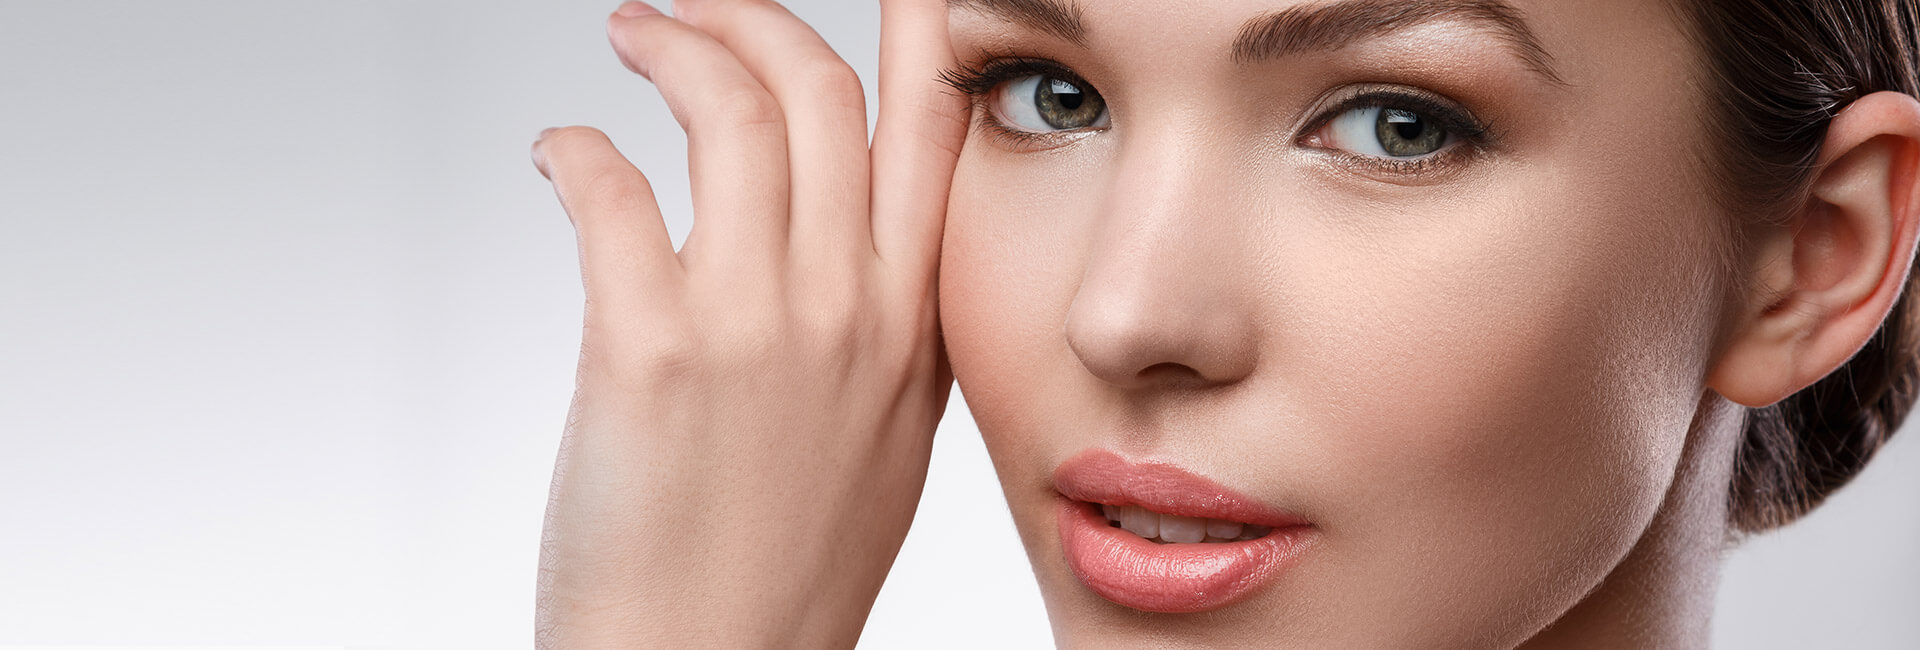 Juvéderm® treatment in Knoxville, TN